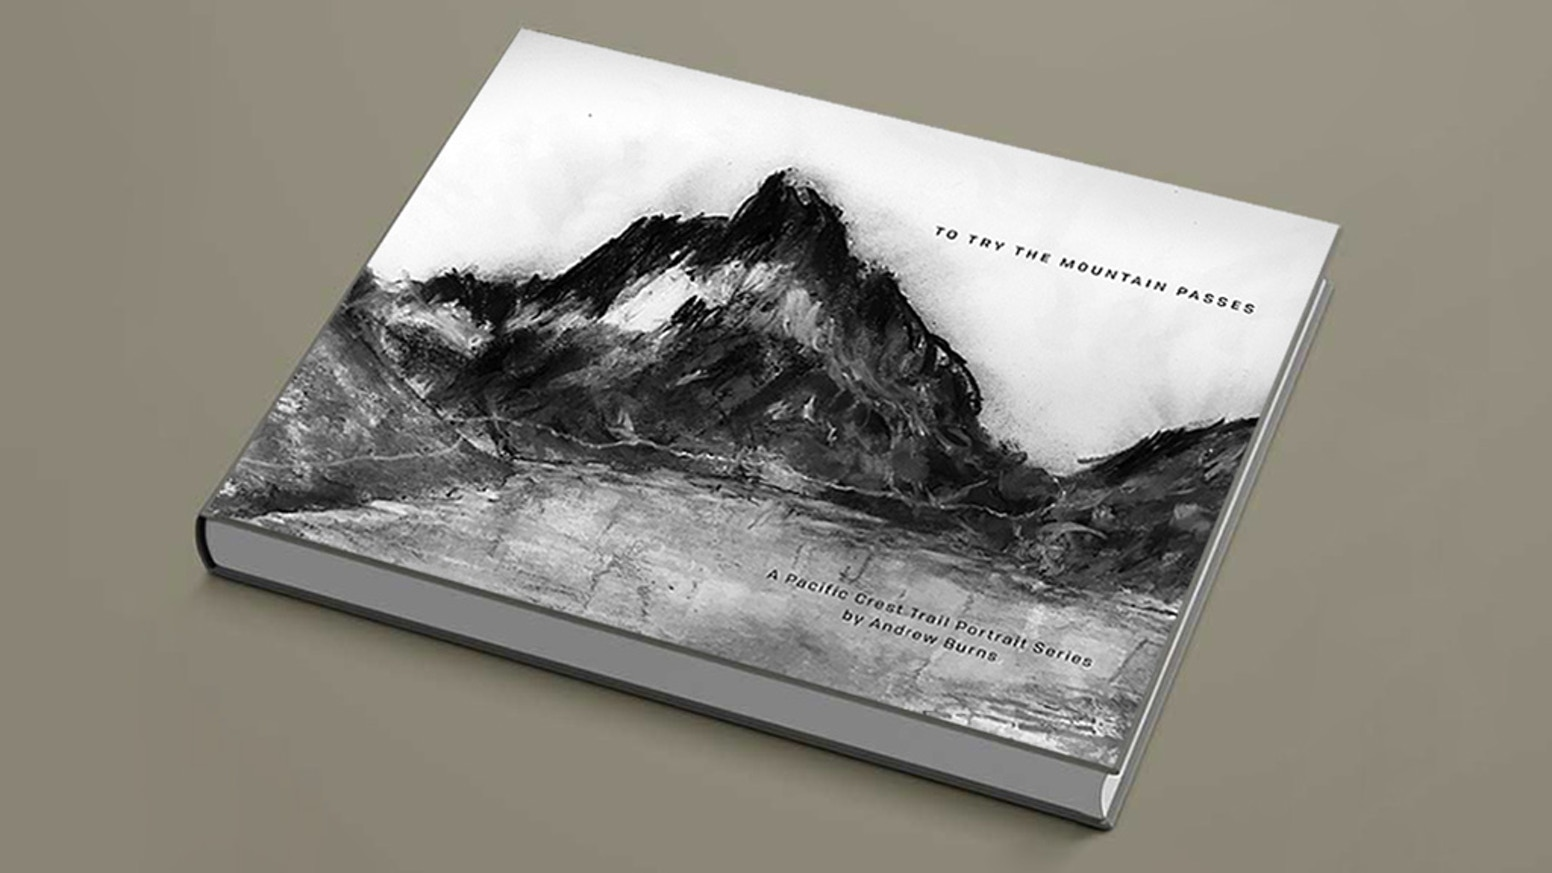 A photo book featuring an ongoing portrait series of Pacific Crest Trail thru-hikers & their stories.